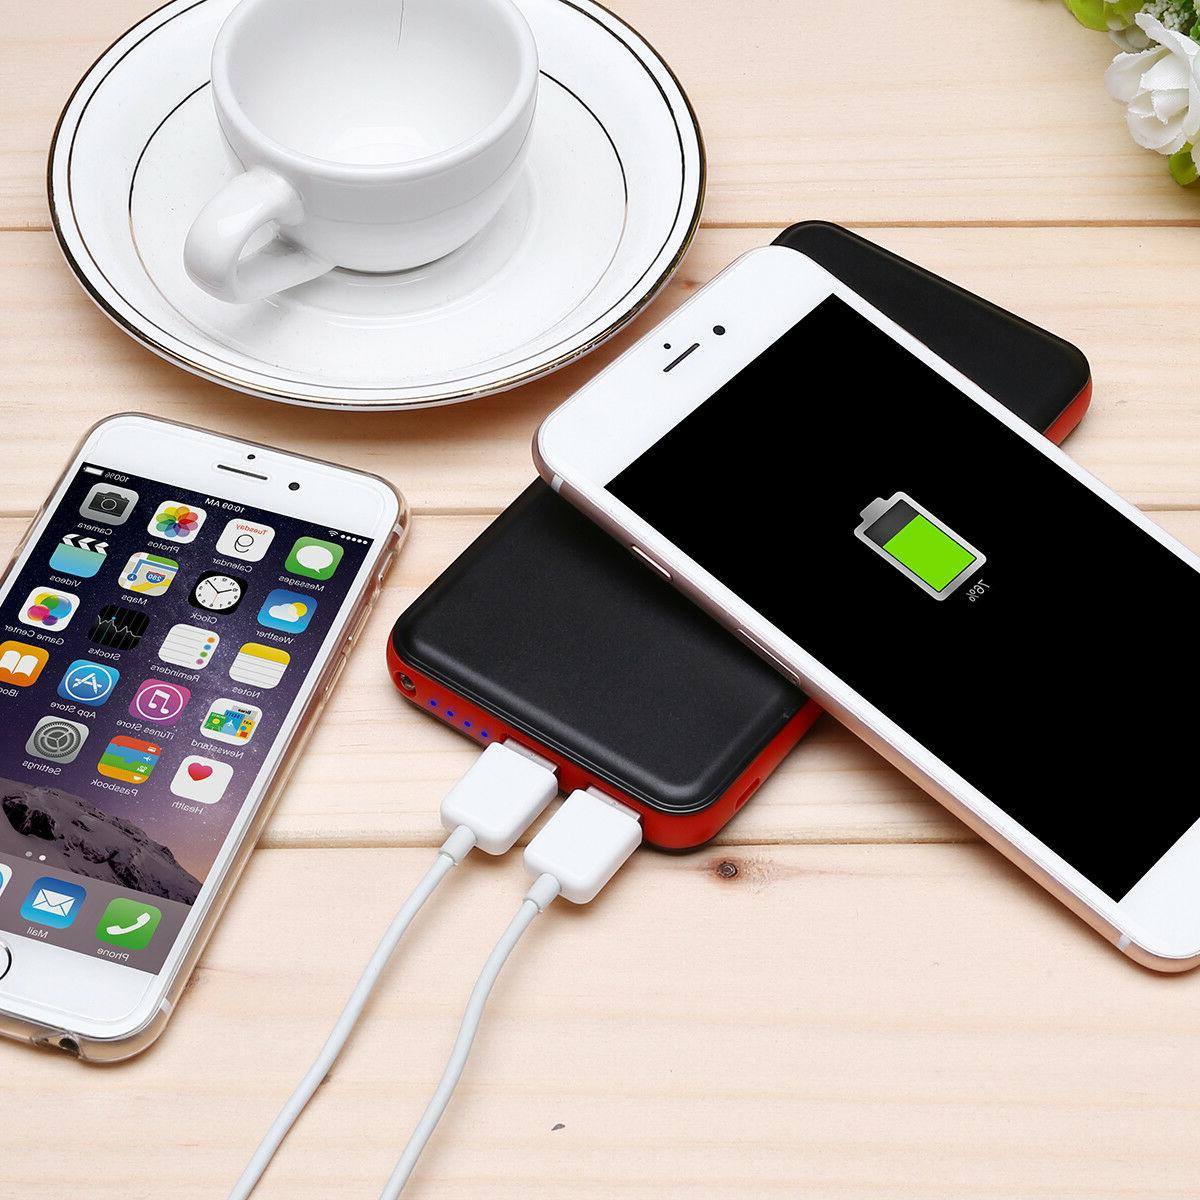 20000mAh Power Bank Portable Charger For Phone Tablets iPad iPhone LG